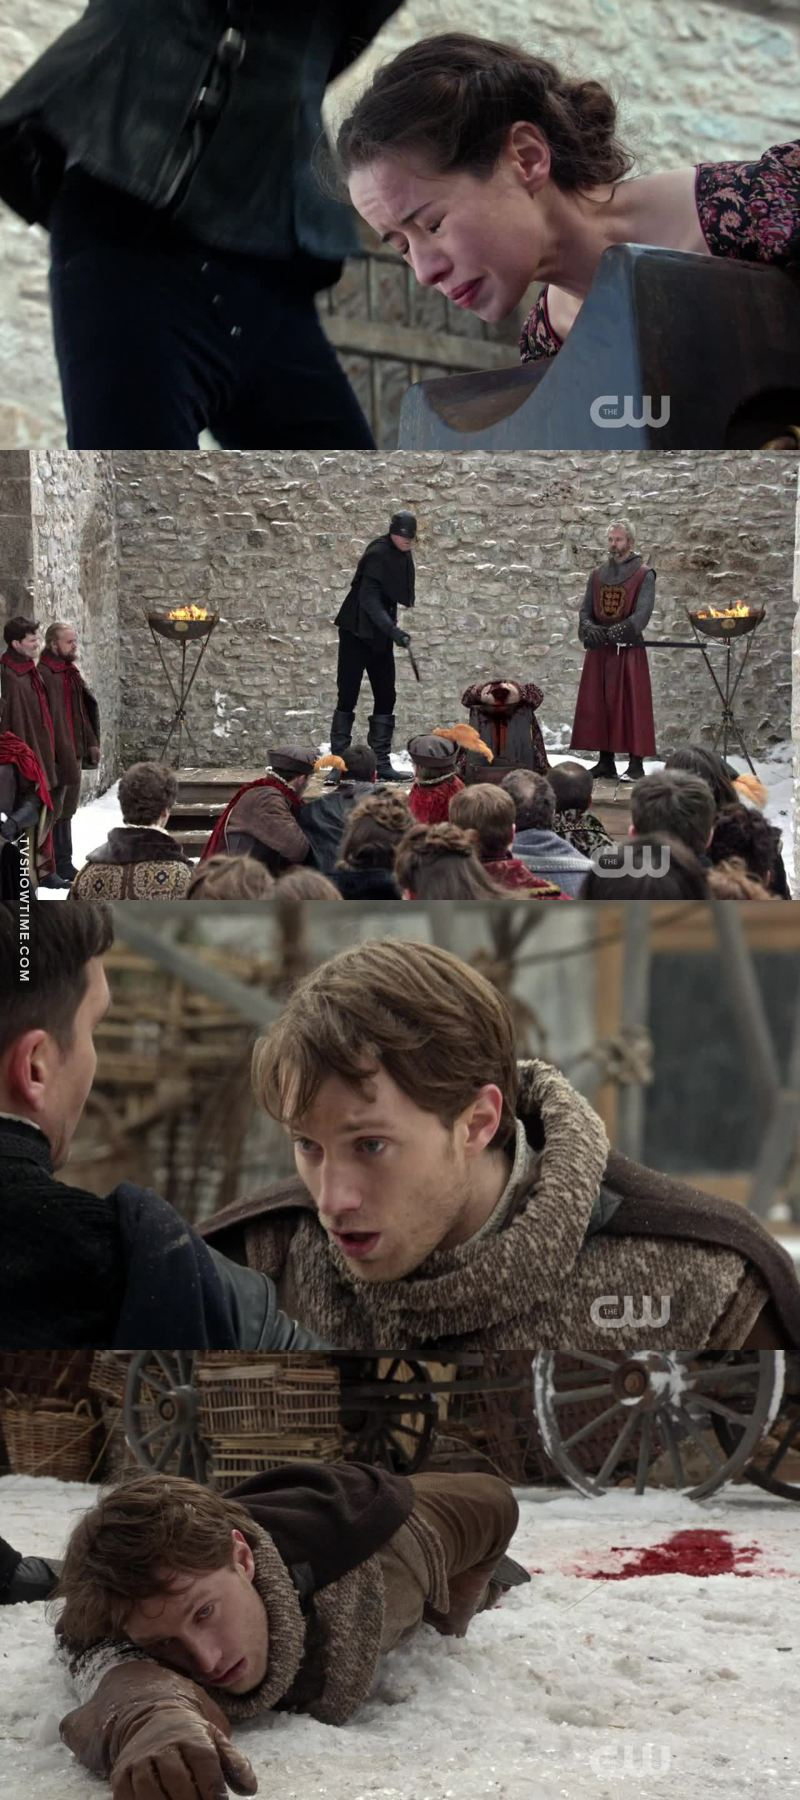 When did Reign became Game of Thrones?! 😱